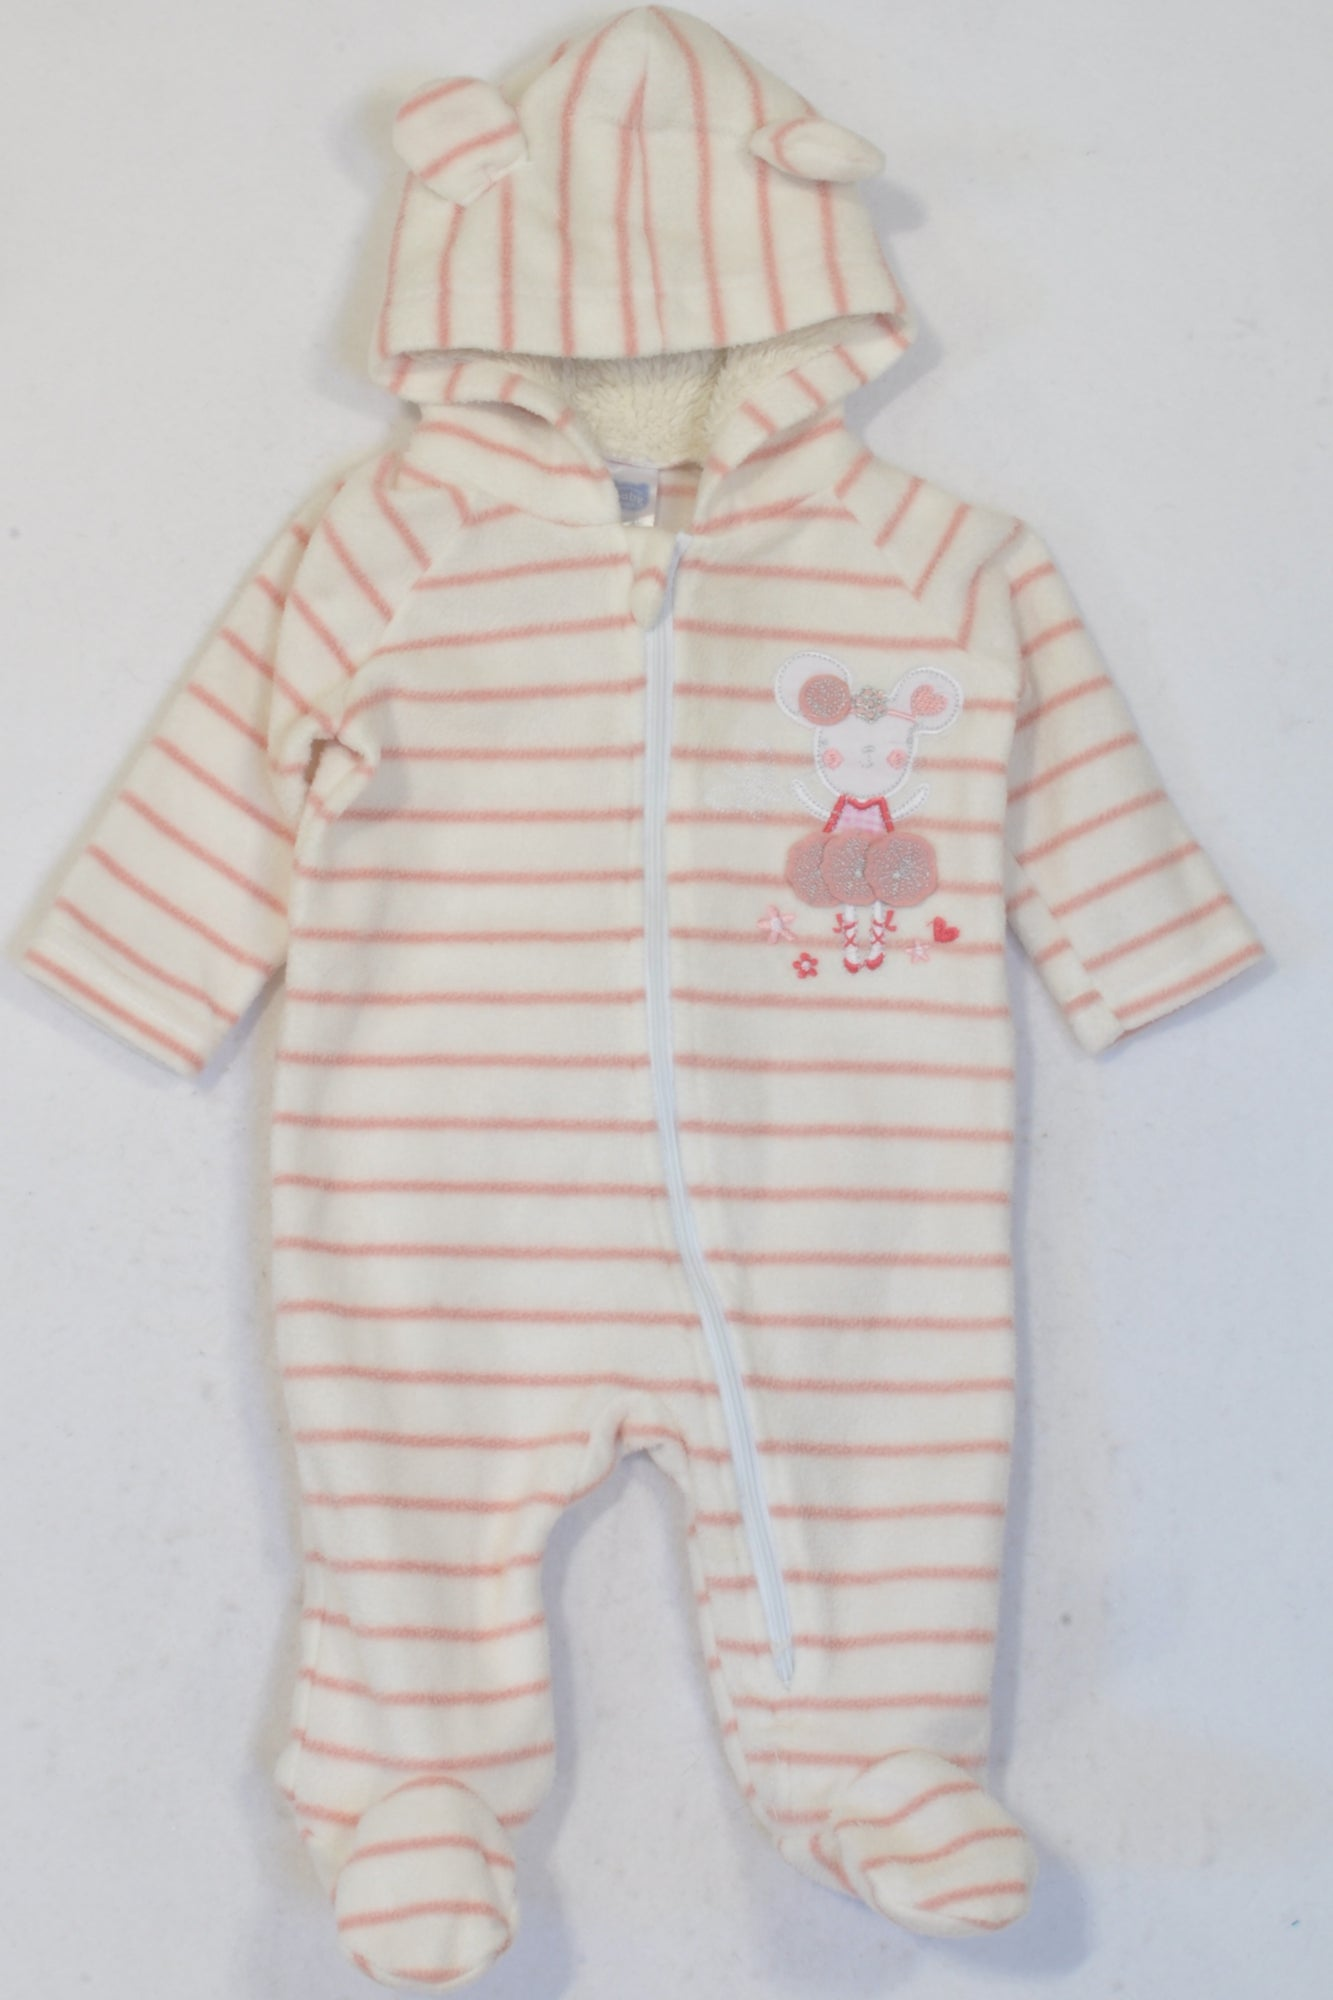 Ackermans Ivory & Pink Striped Hooded Mouse Fleece Onesie Girls 0-3 months